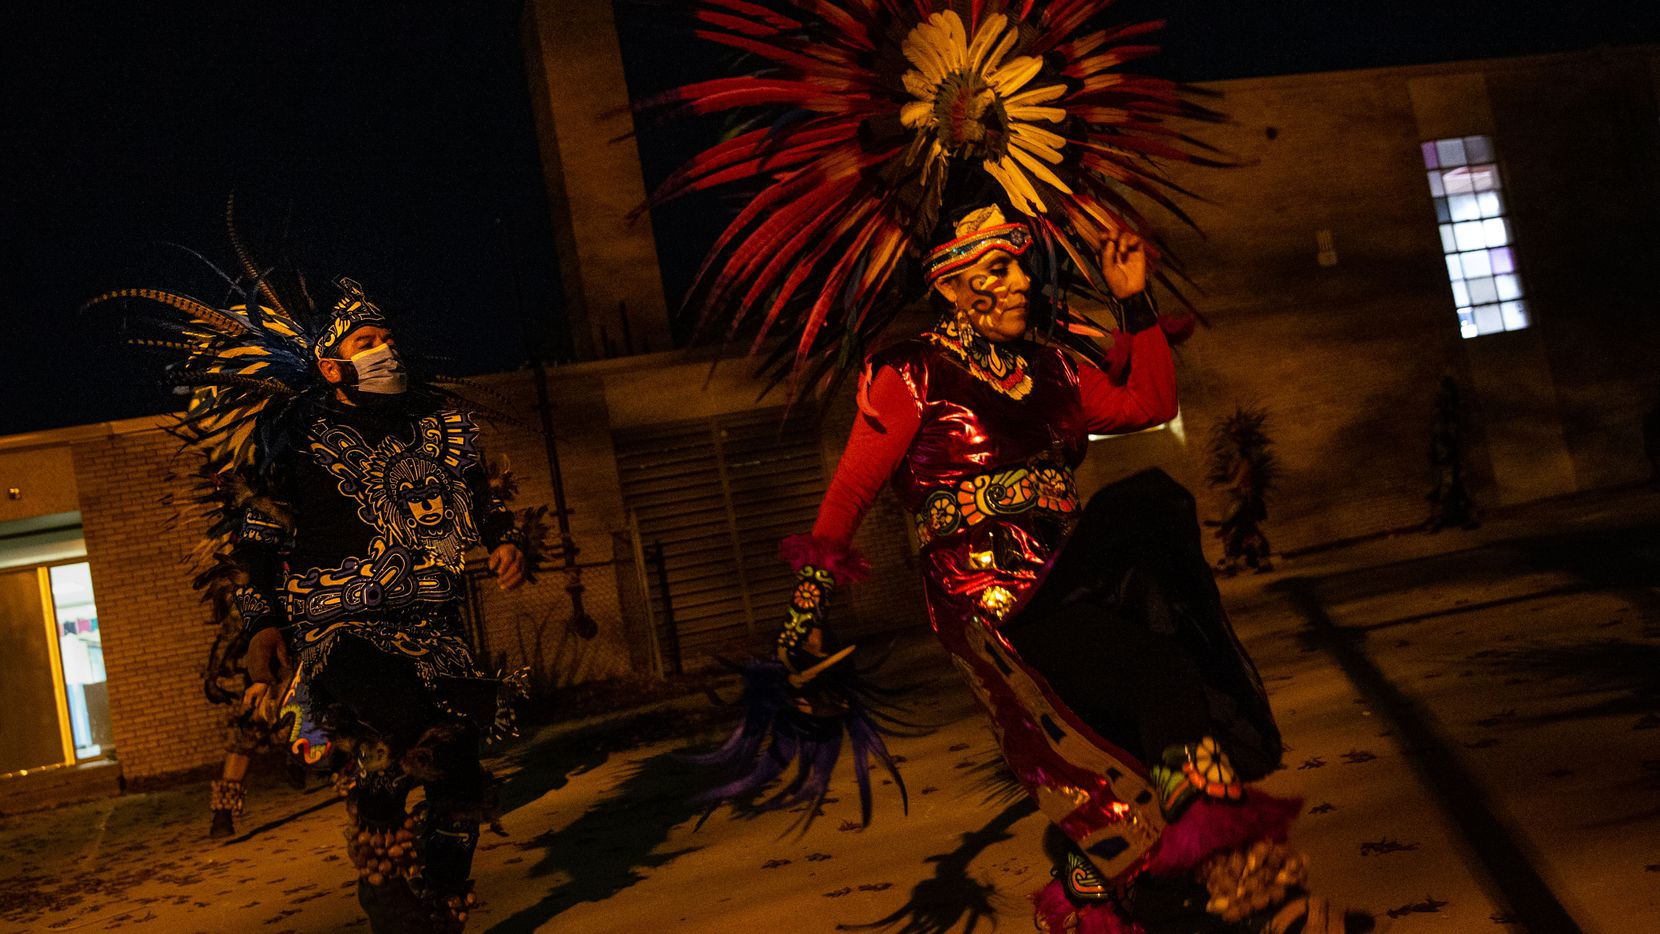 Gloria Flores (right) and other members of Danza Chichimeca San Miguel de Arcángel run through dress rehearsal for celebrations of Day of the Virgin of Guadalupe ceremonies, which are Saturday. The group practiced outside Stemmons Elementary School in west Oak Cliff. Outdoor rehearsals are among several steps that matachines dance groups have taken this year to keep people safe during the pandemic.